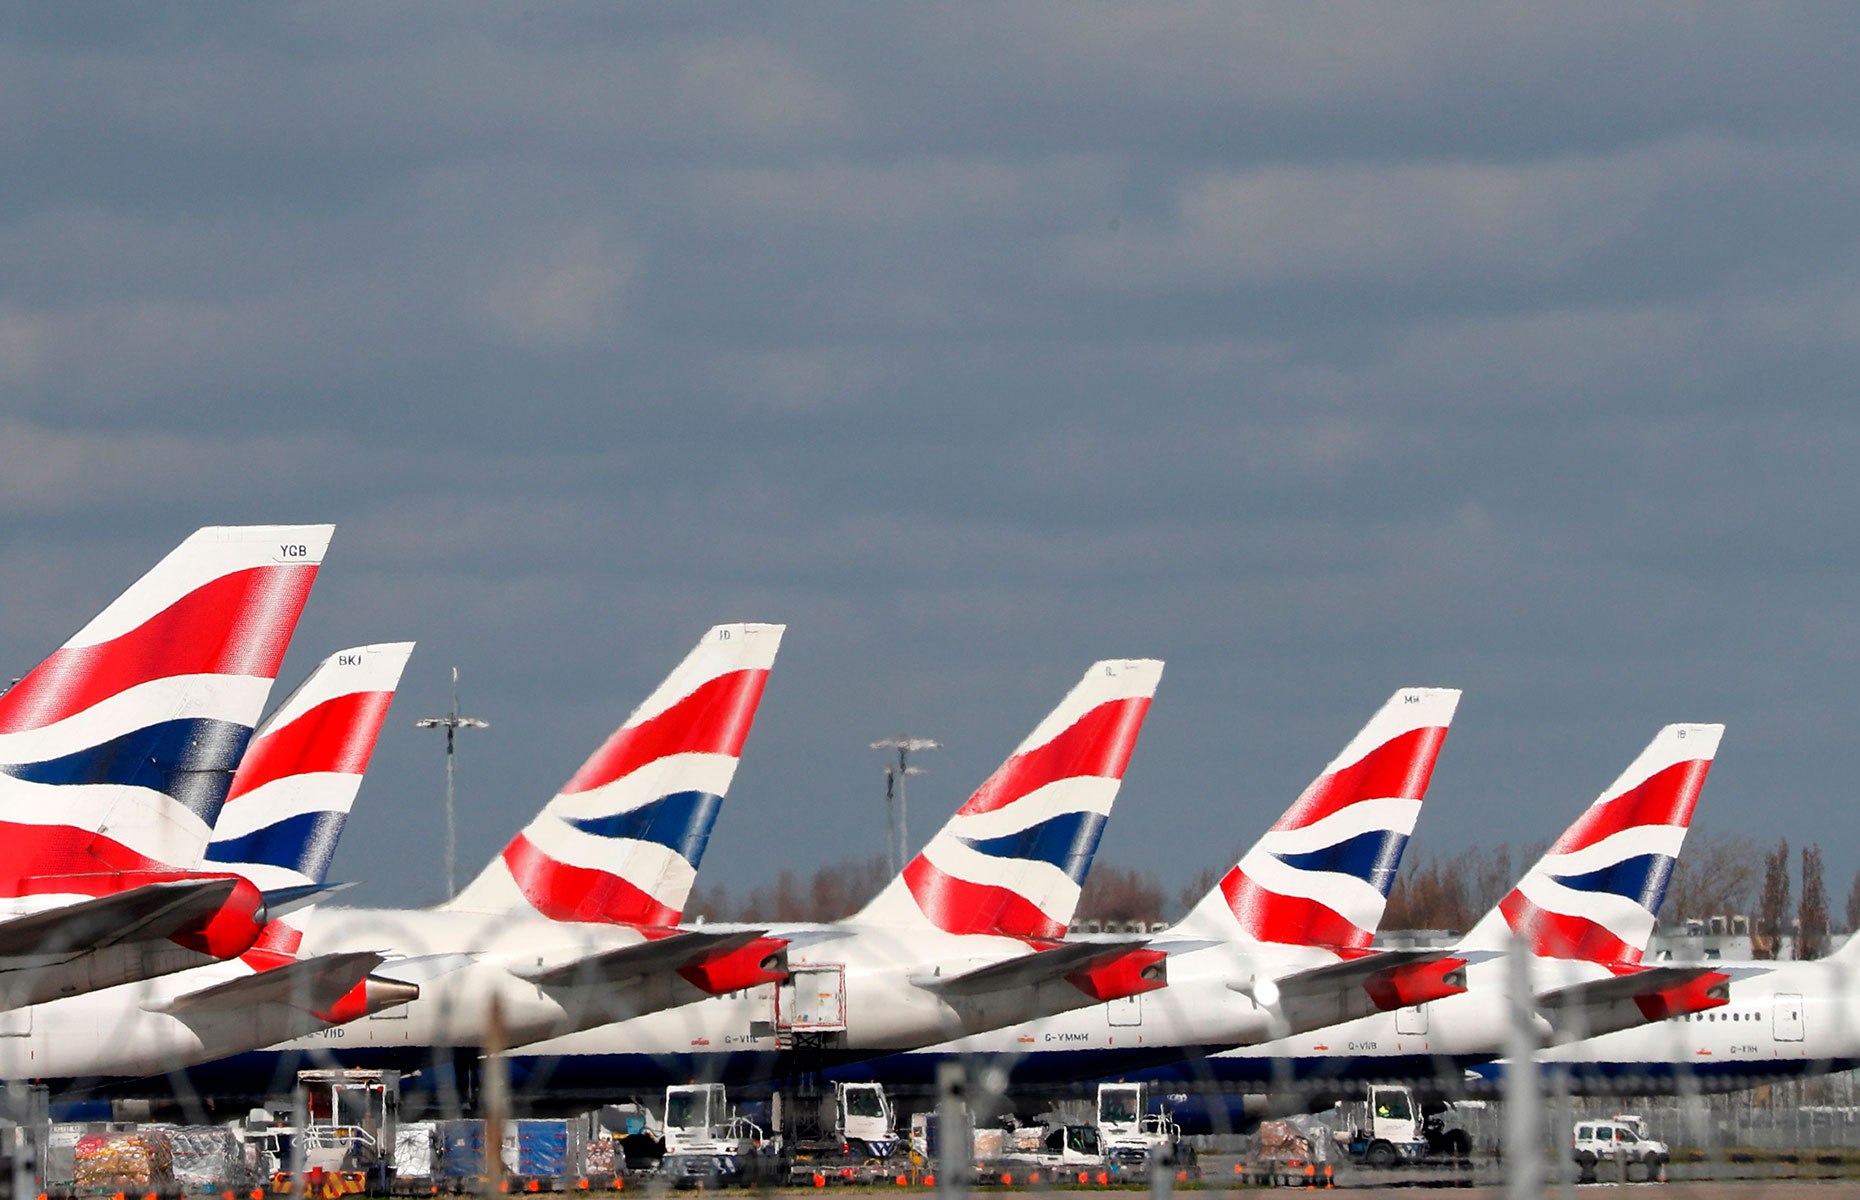 Grounded BA planes at Heathrow (Image: ADRIAN DENNIS/AFP via Getty Images)